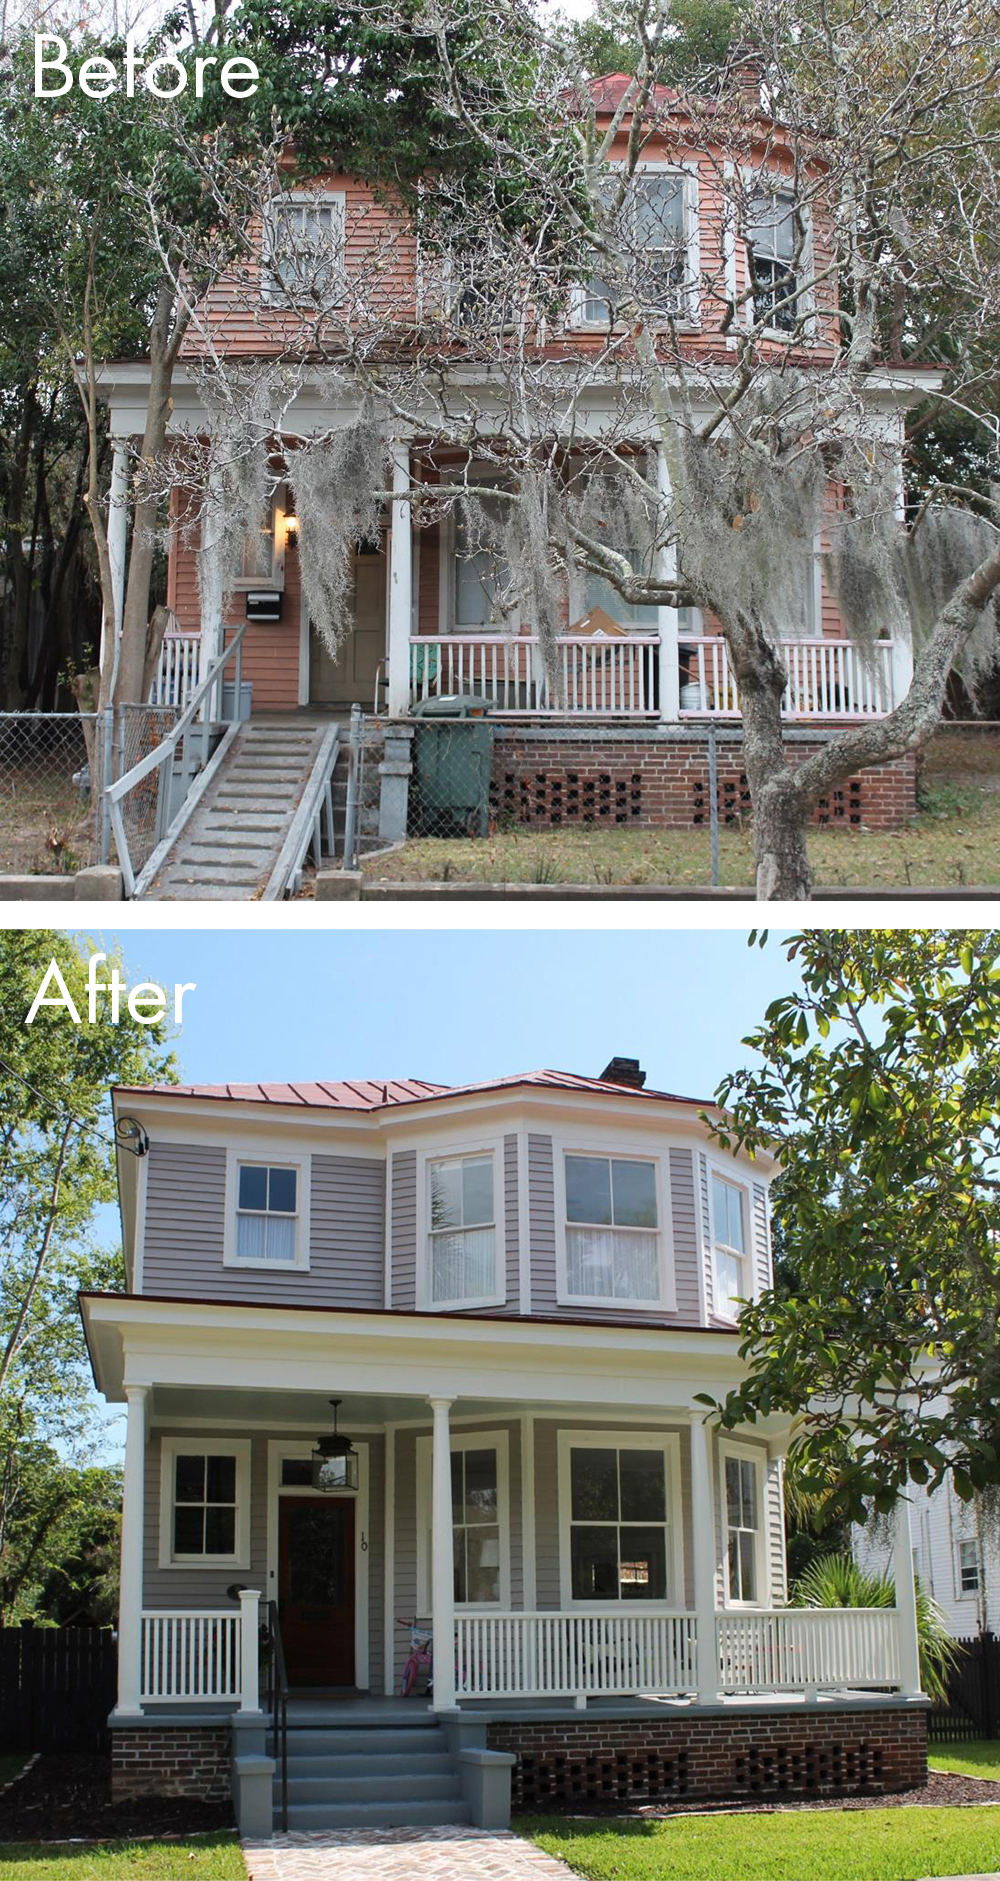 Before & After photos inside and out